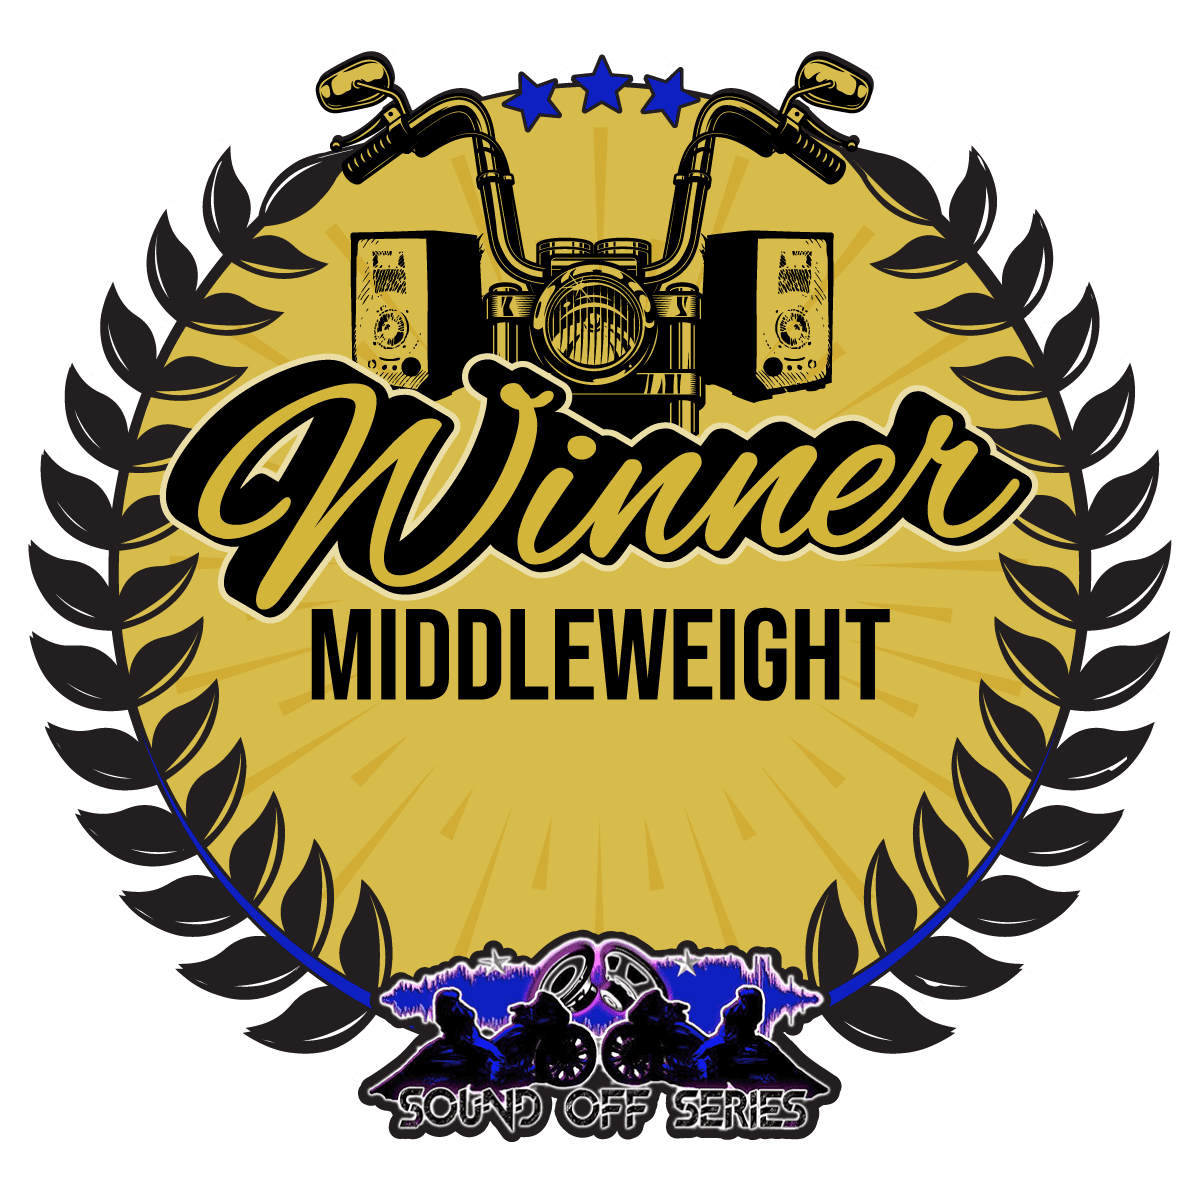 290810_WinnerGraphic_Op1-Middleweight_092518